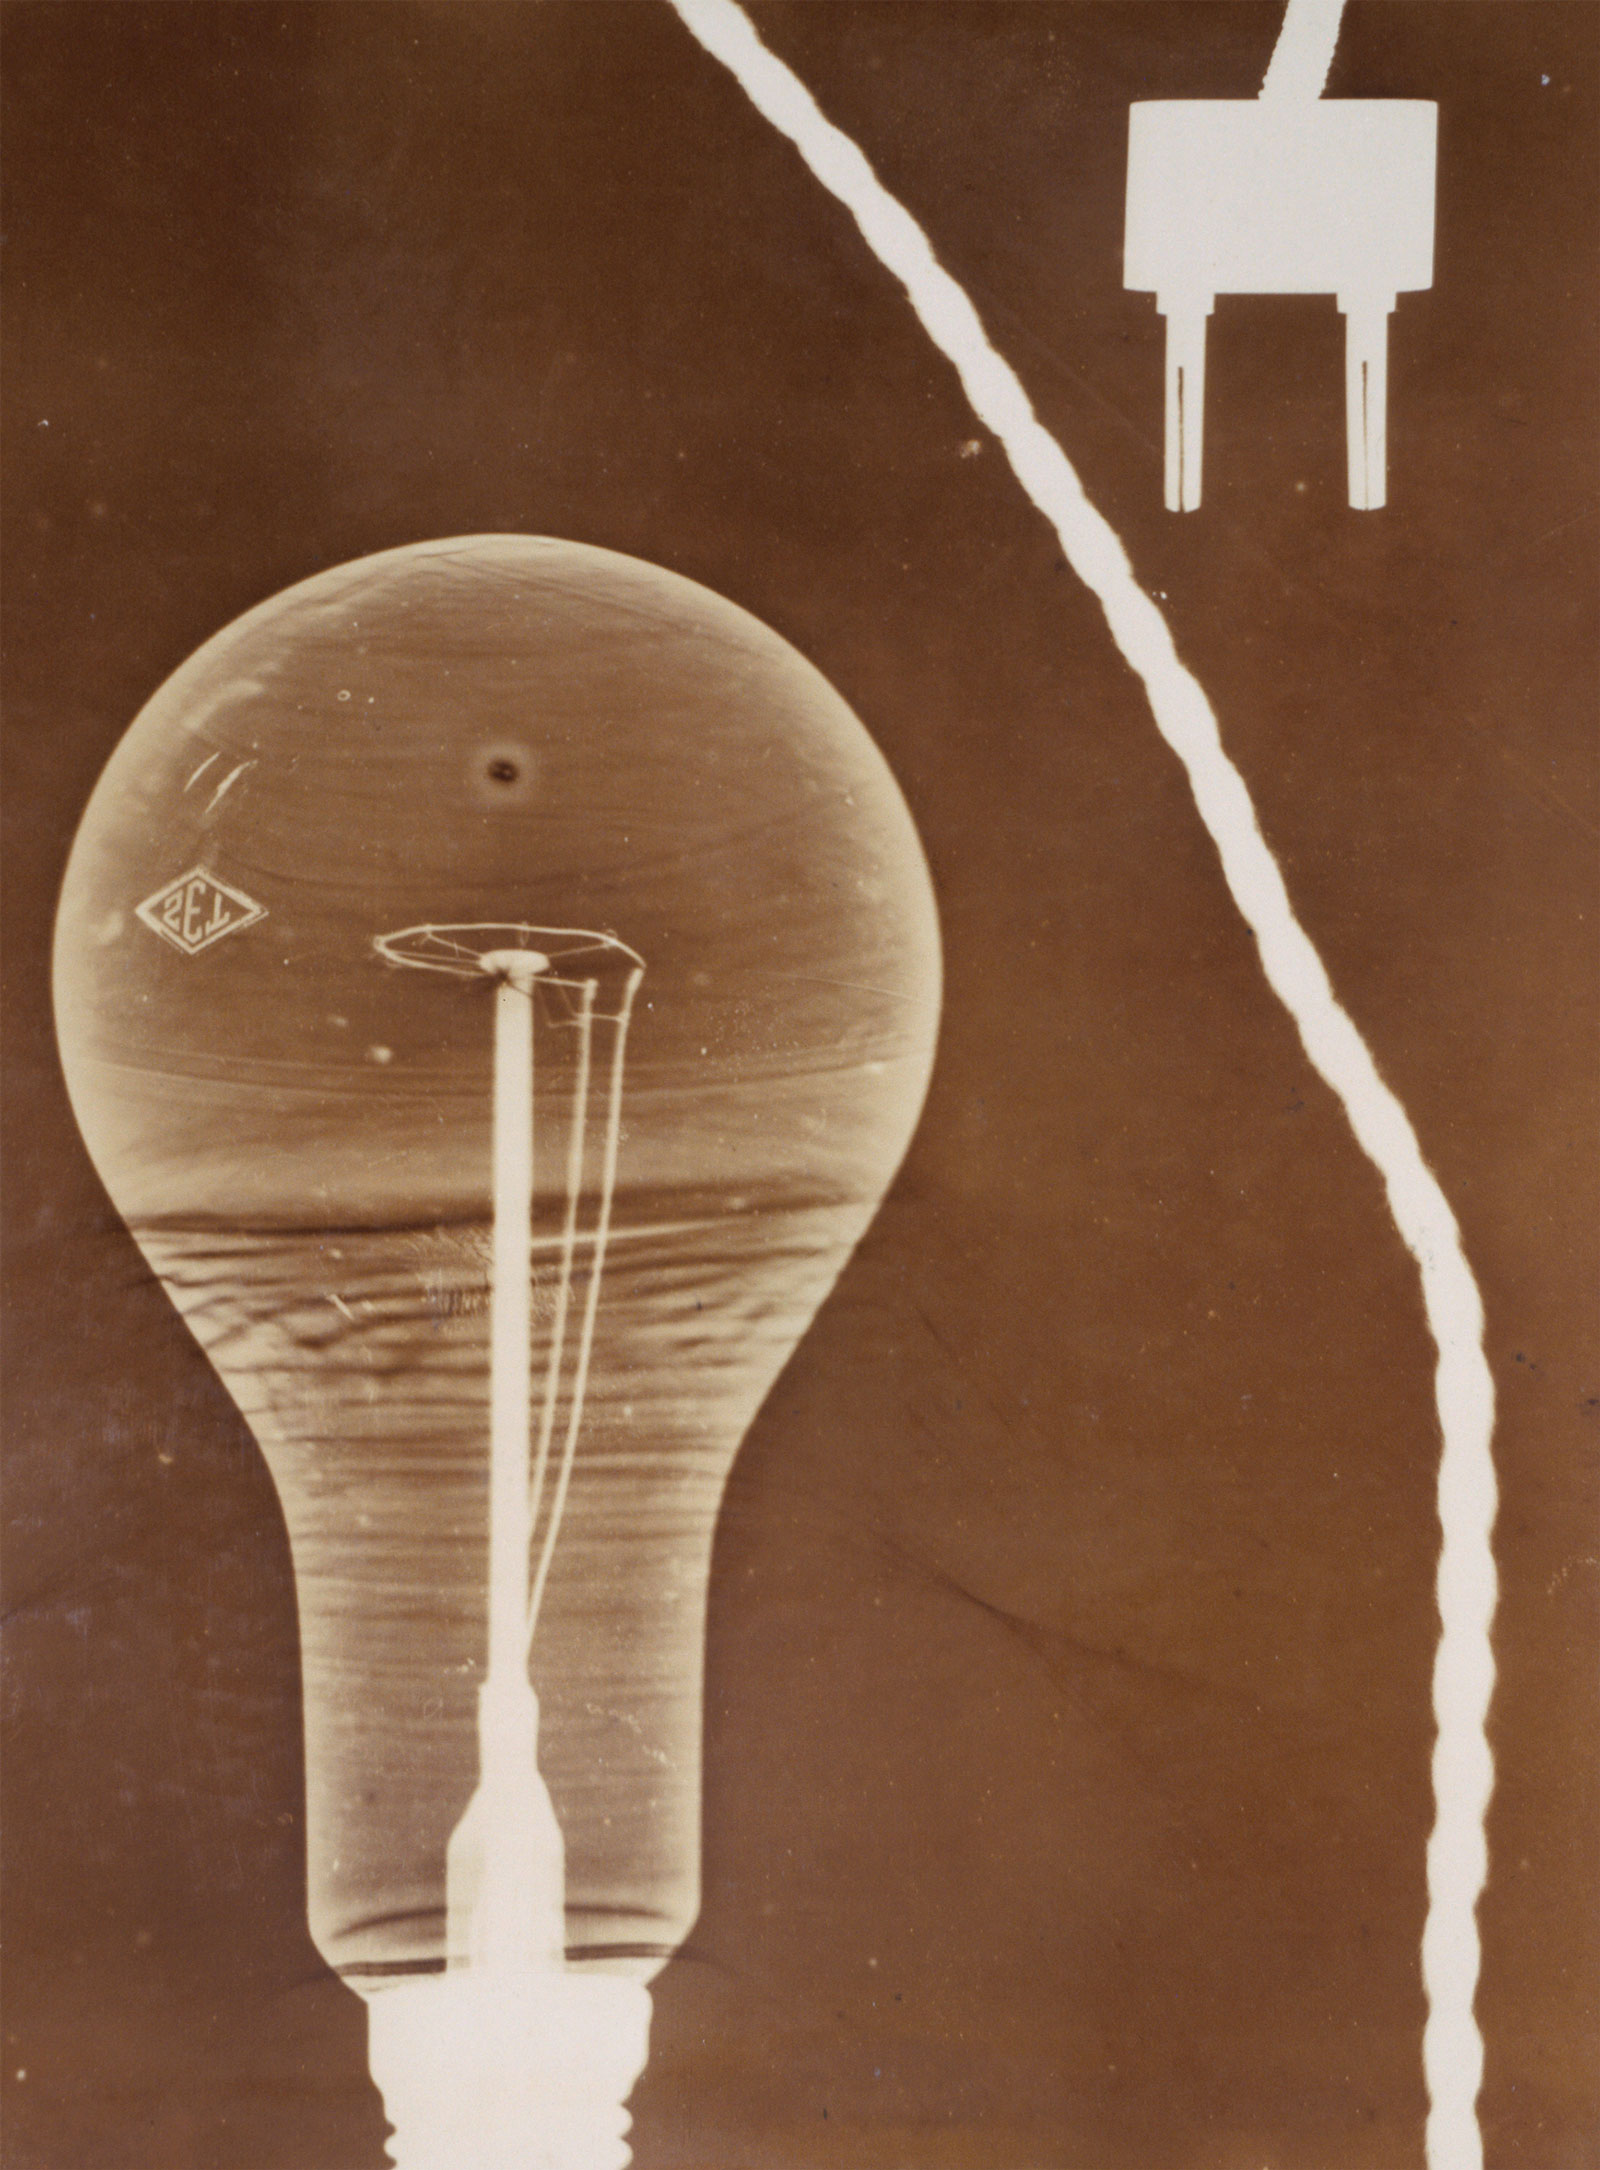 Georgy Zimin: Still Life with Light Bulb, 1928-1930